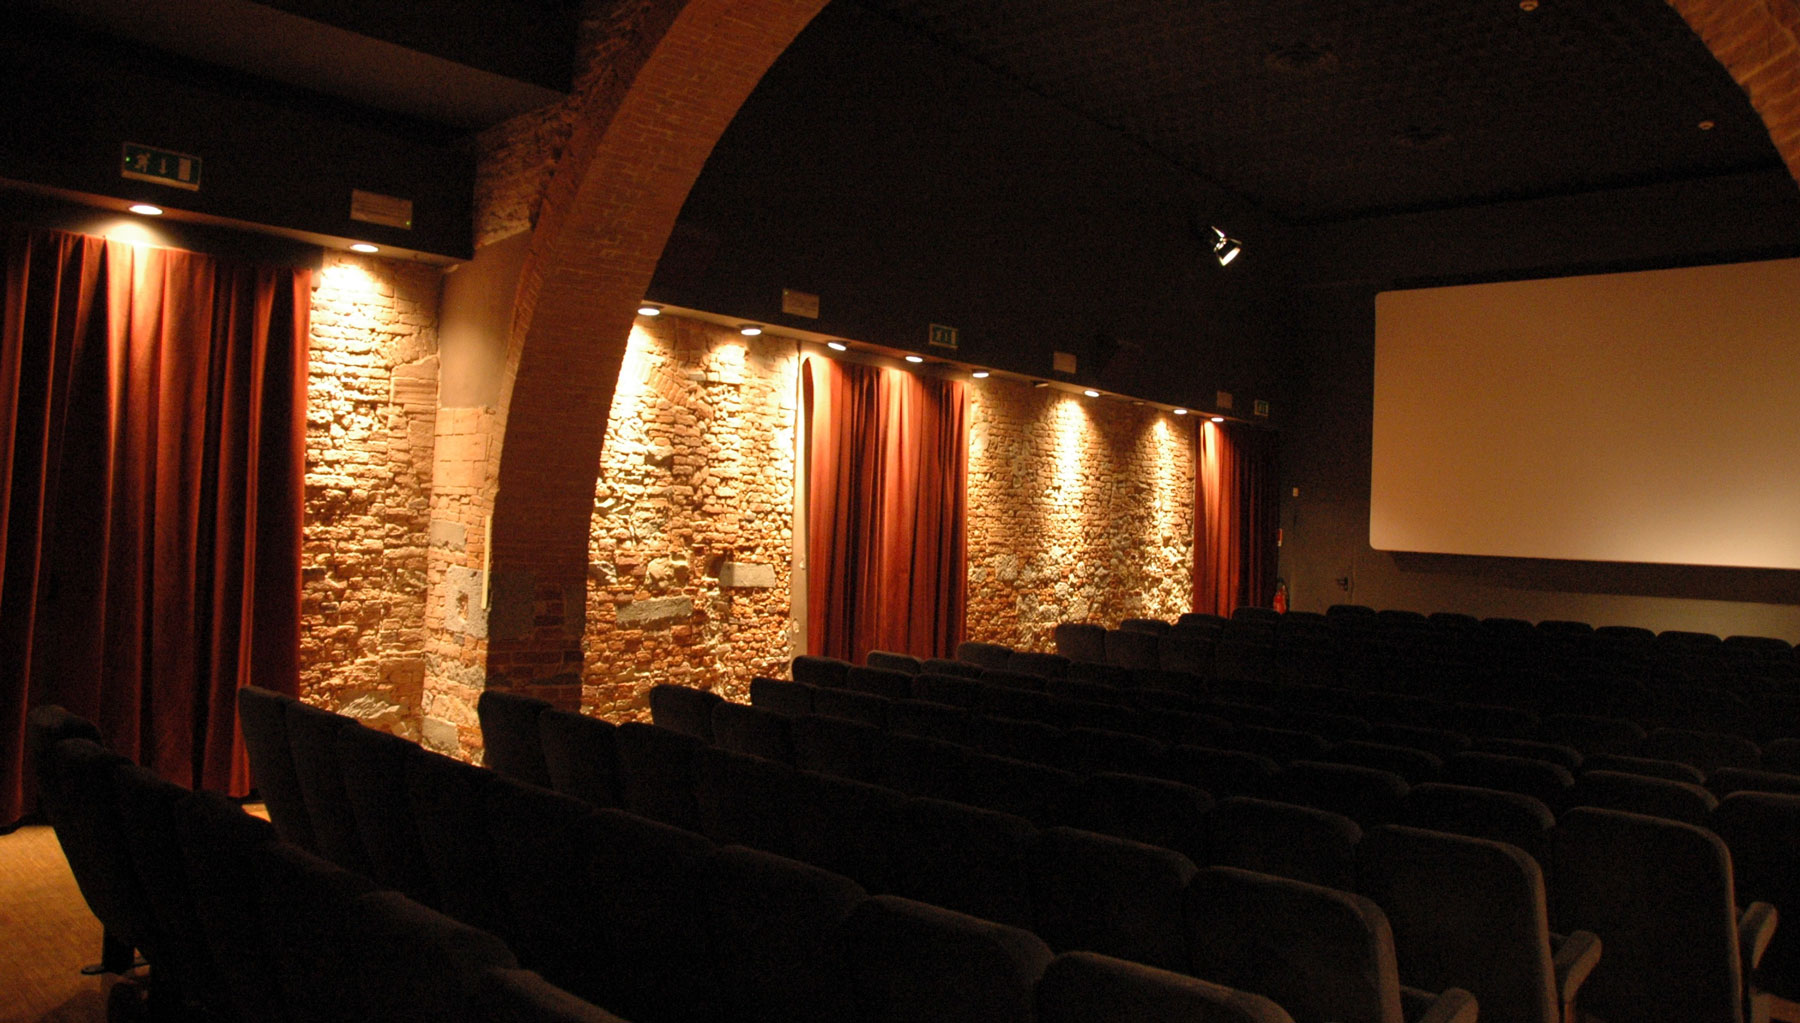 Arsenale Cineclub